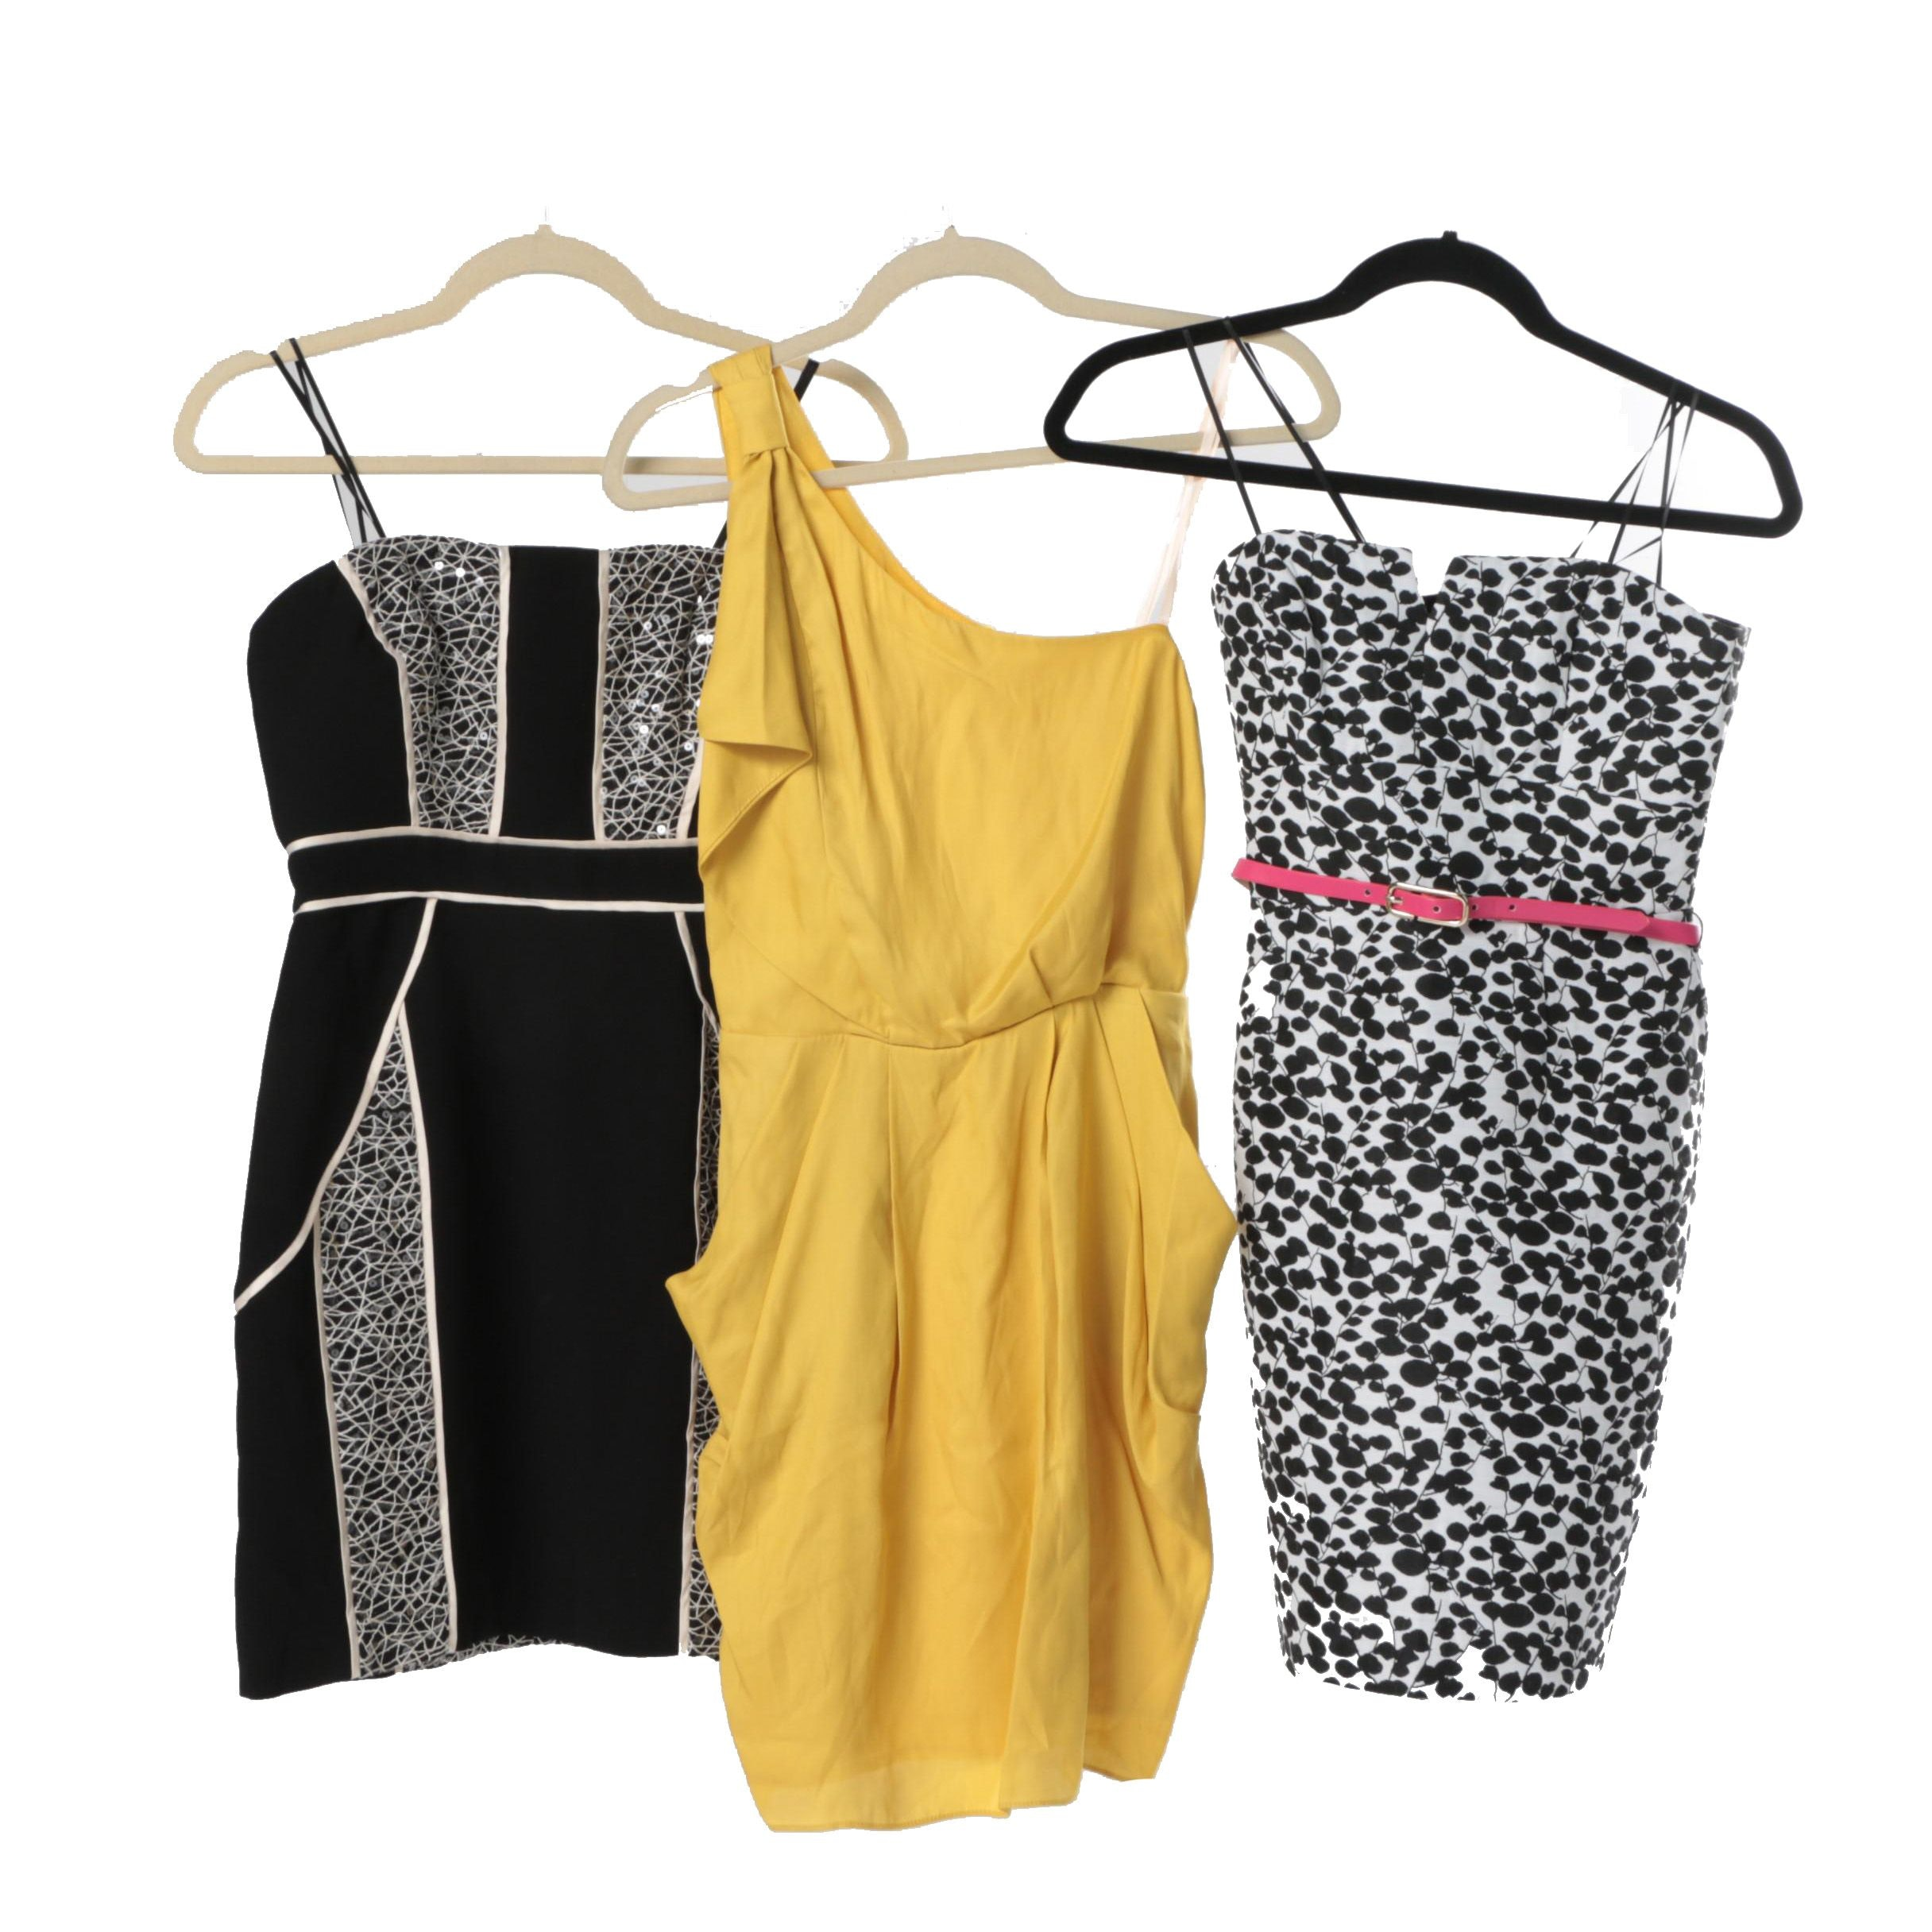 Women's Dresses Featuring BCBG Generation